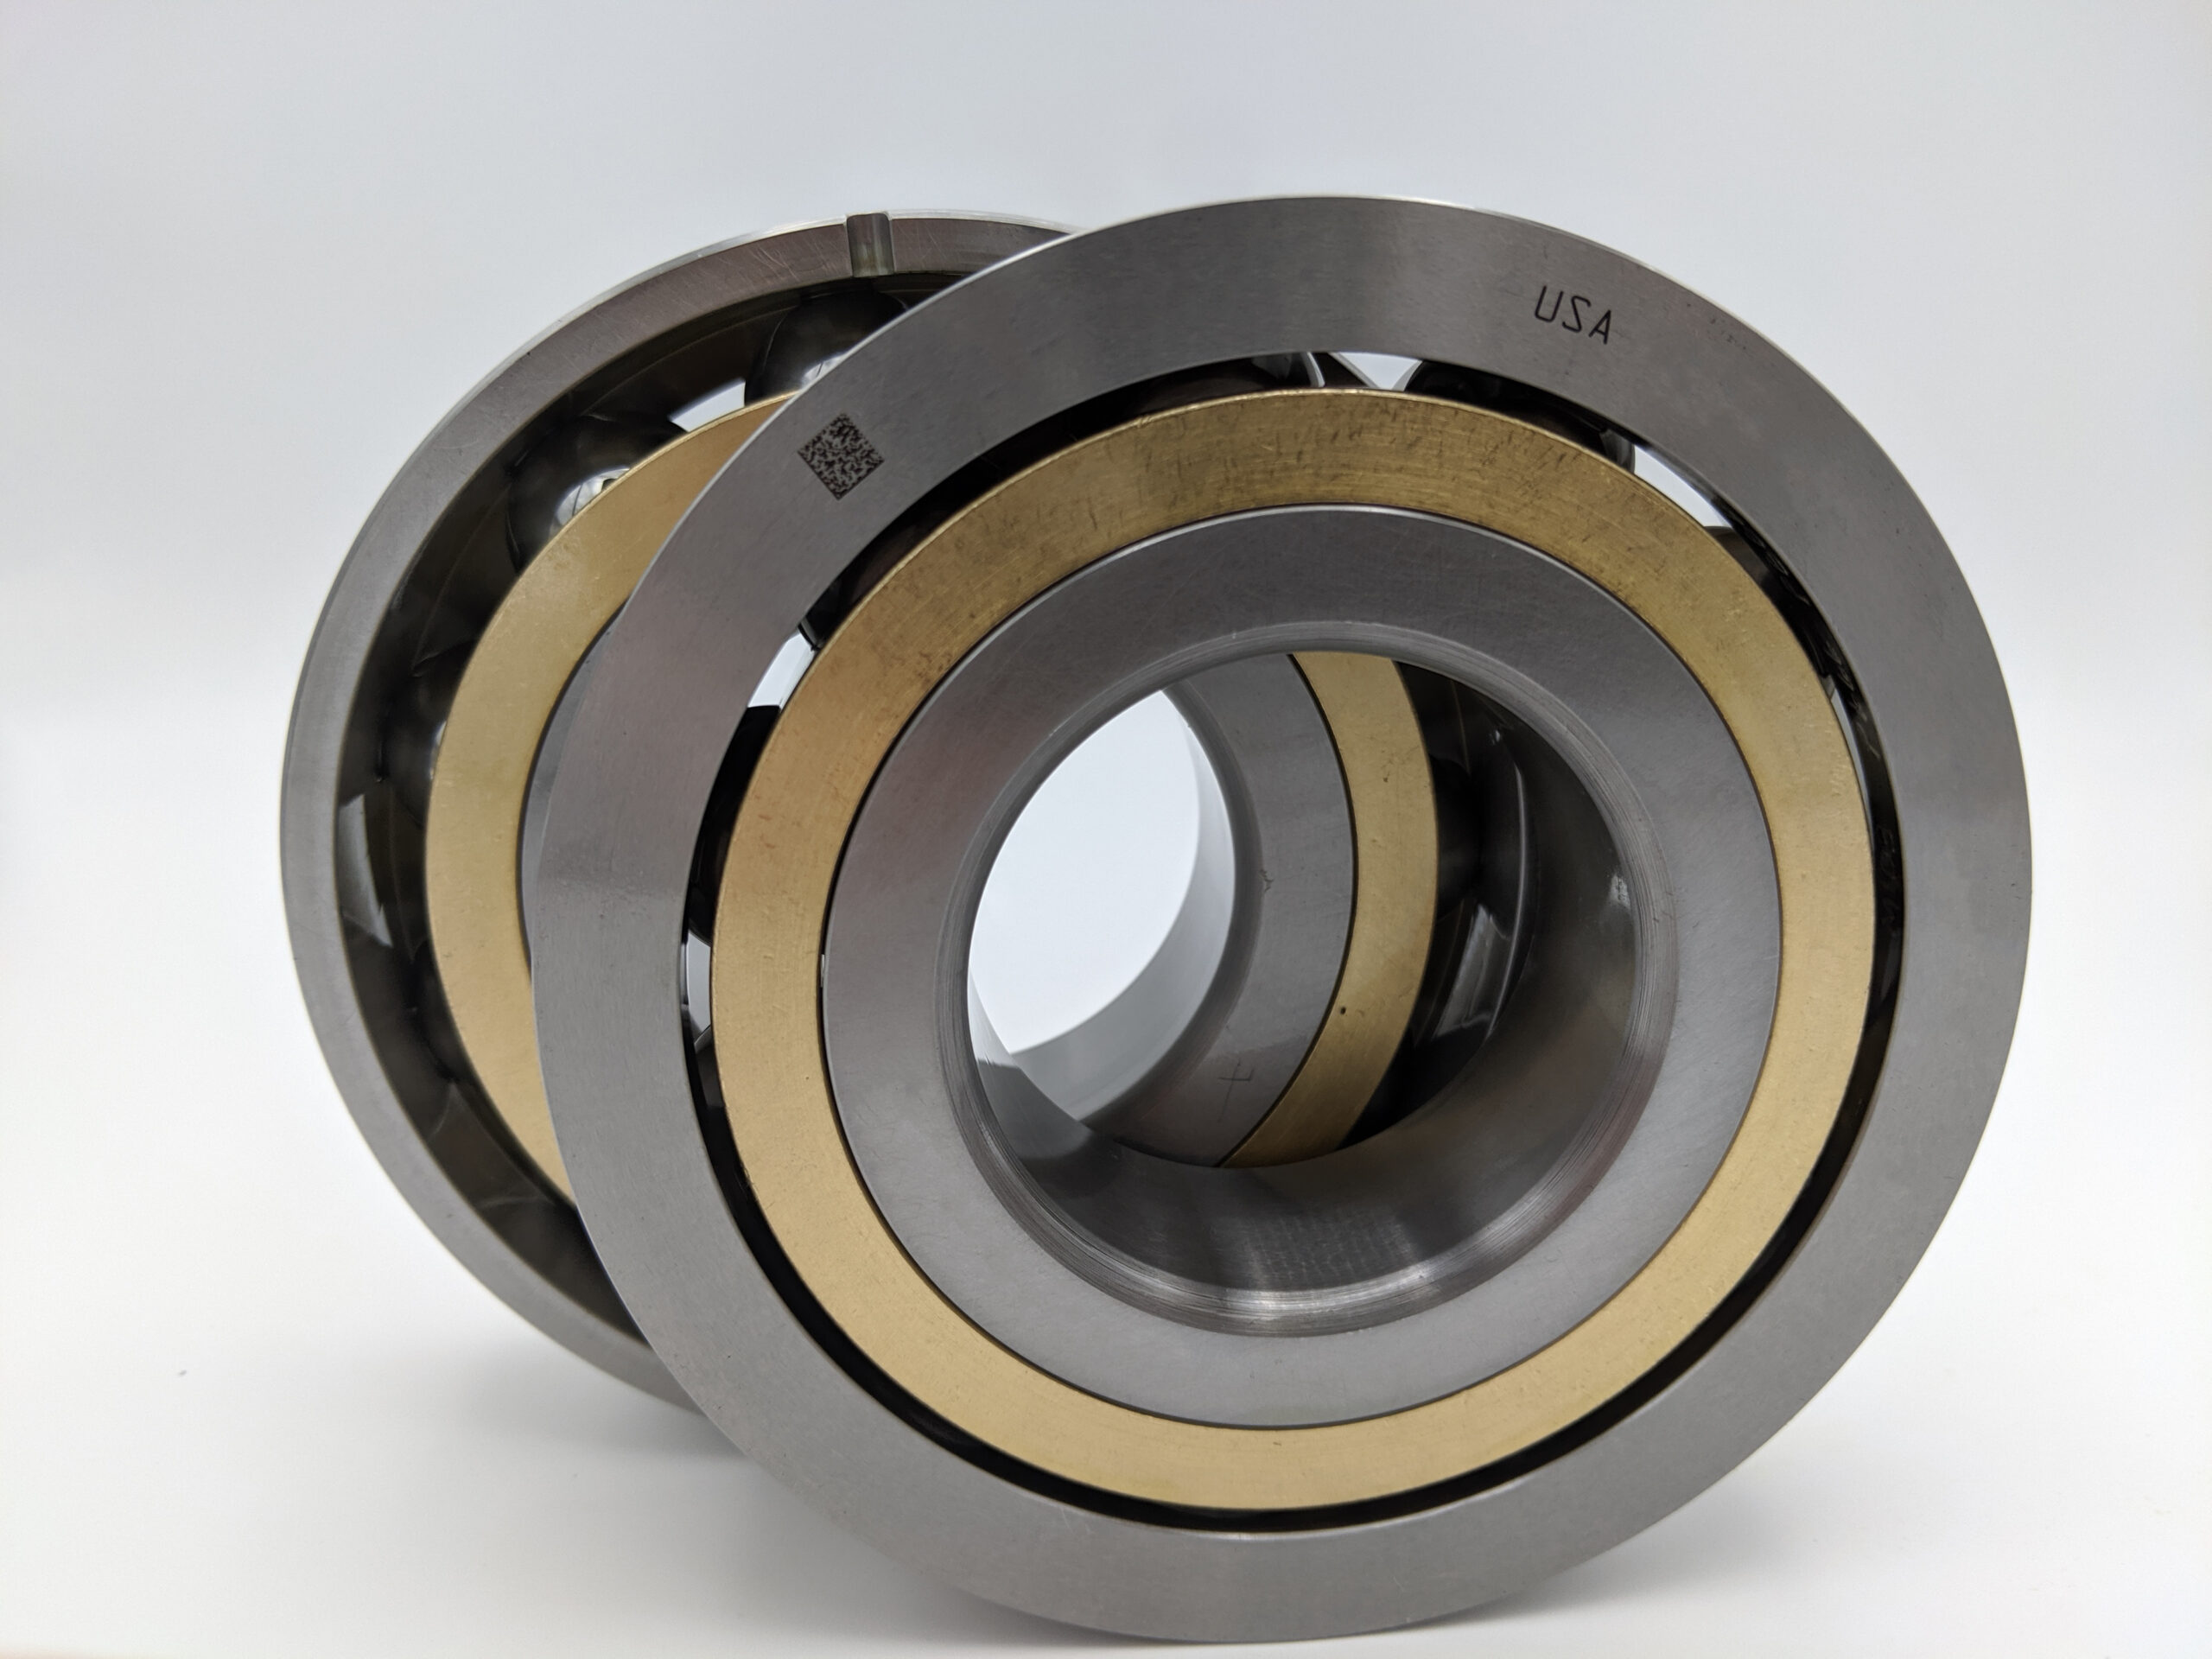 SKF Primetals Bearing Website